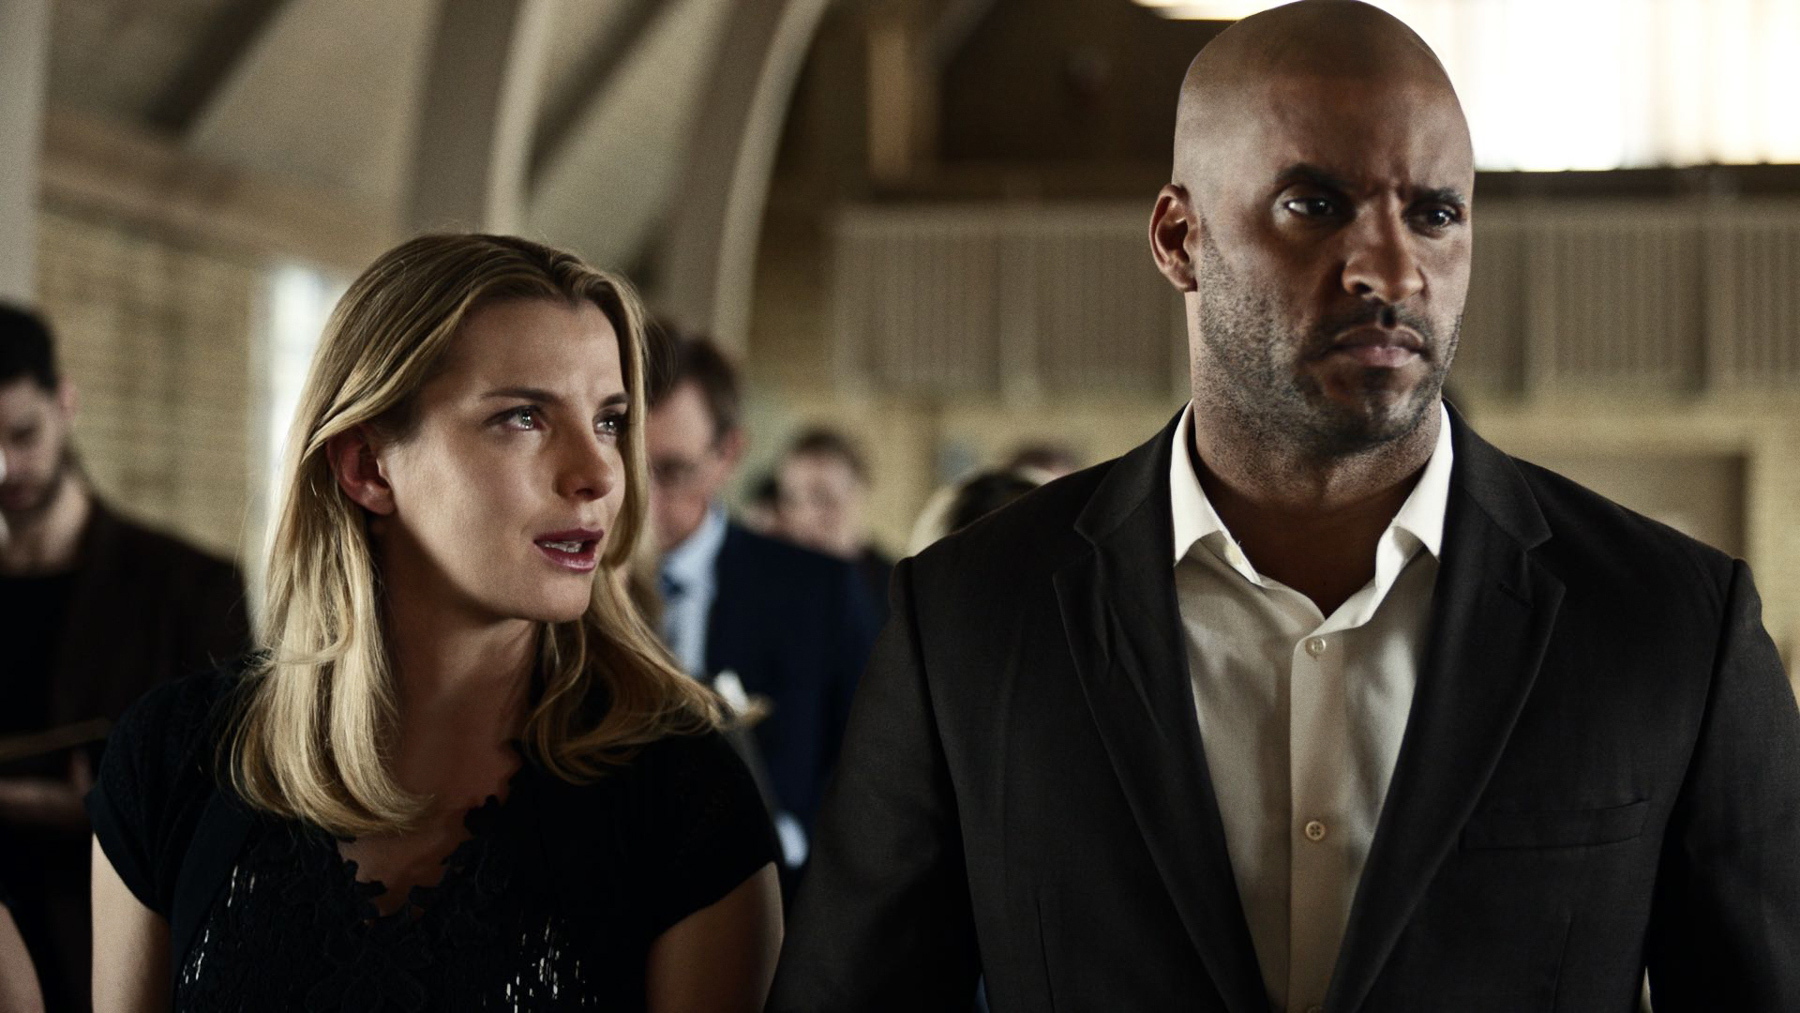 Ricky Whittle and Betty Gilpin in American Gods (2017)